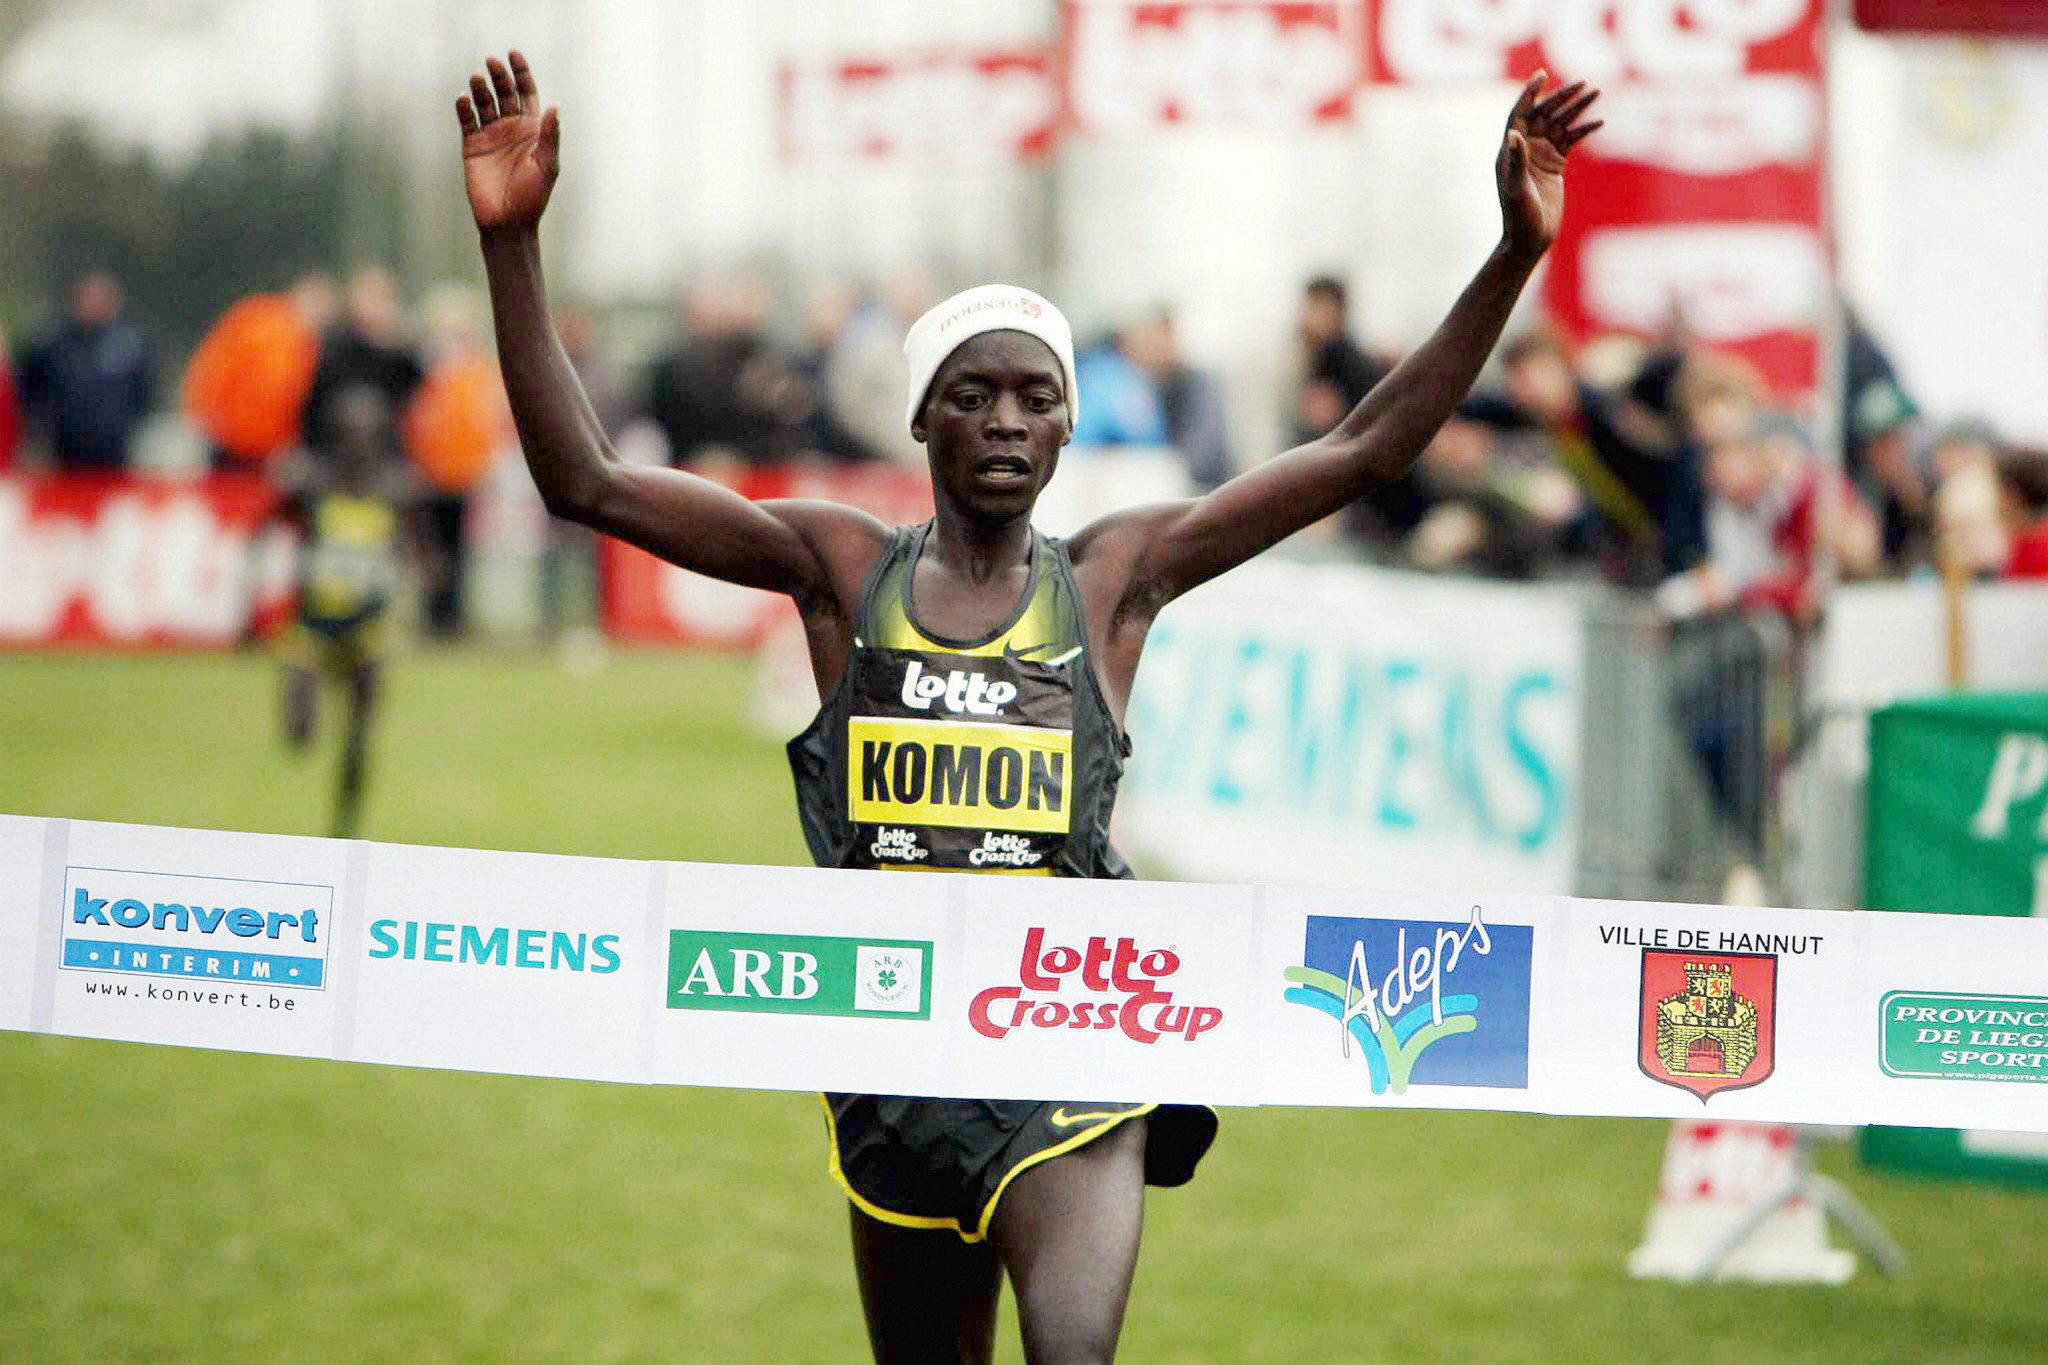 Strong African presence at IAAF Cross Country Permit in Spain